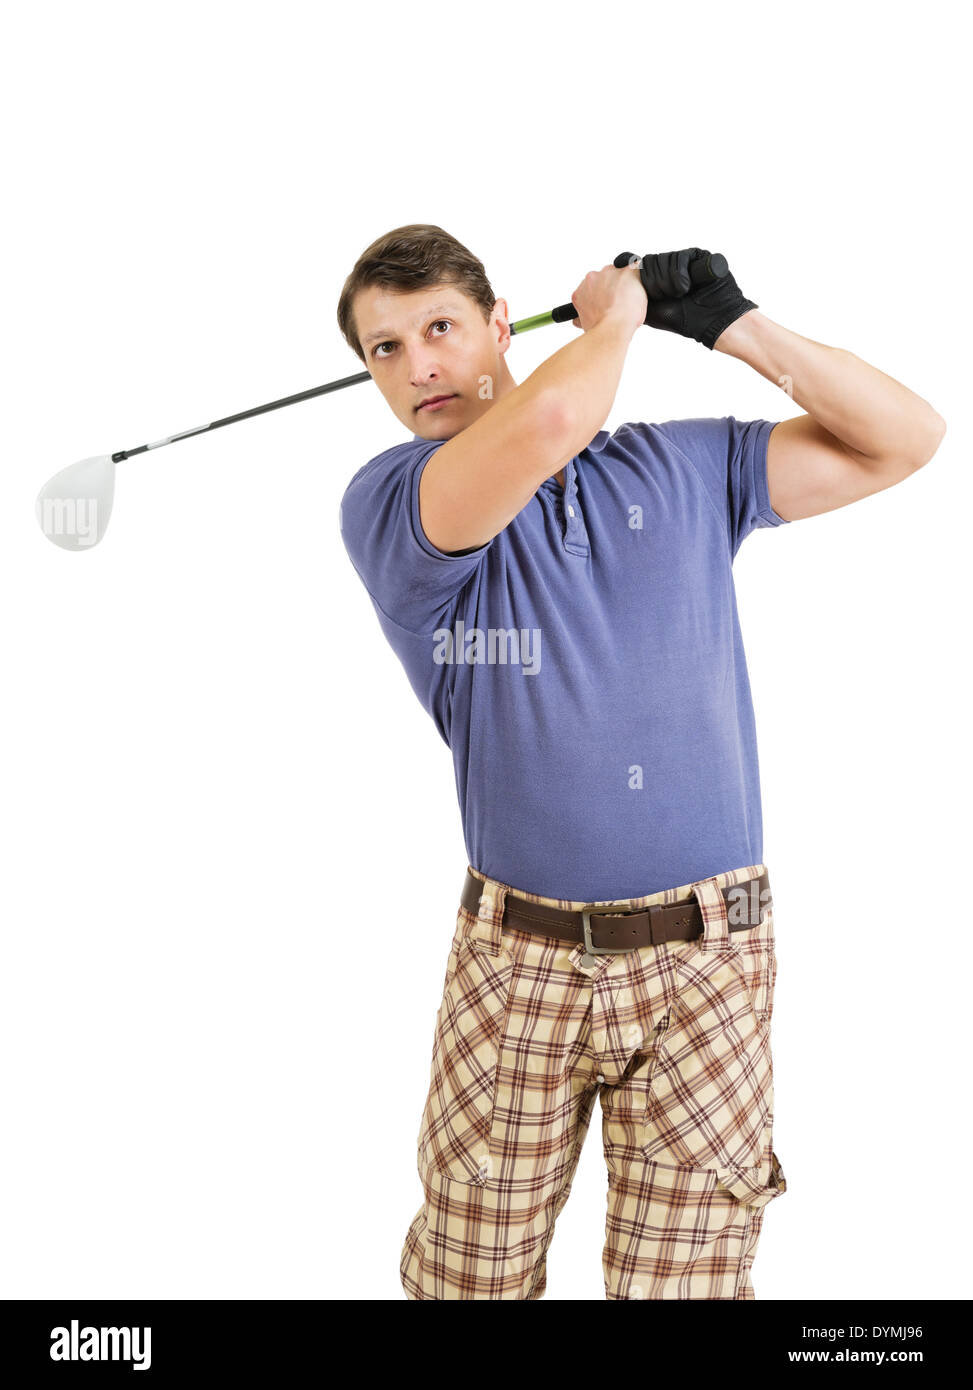 Photo of a male golfer in his late twenties finishing his swing with a driver. - Stock Image